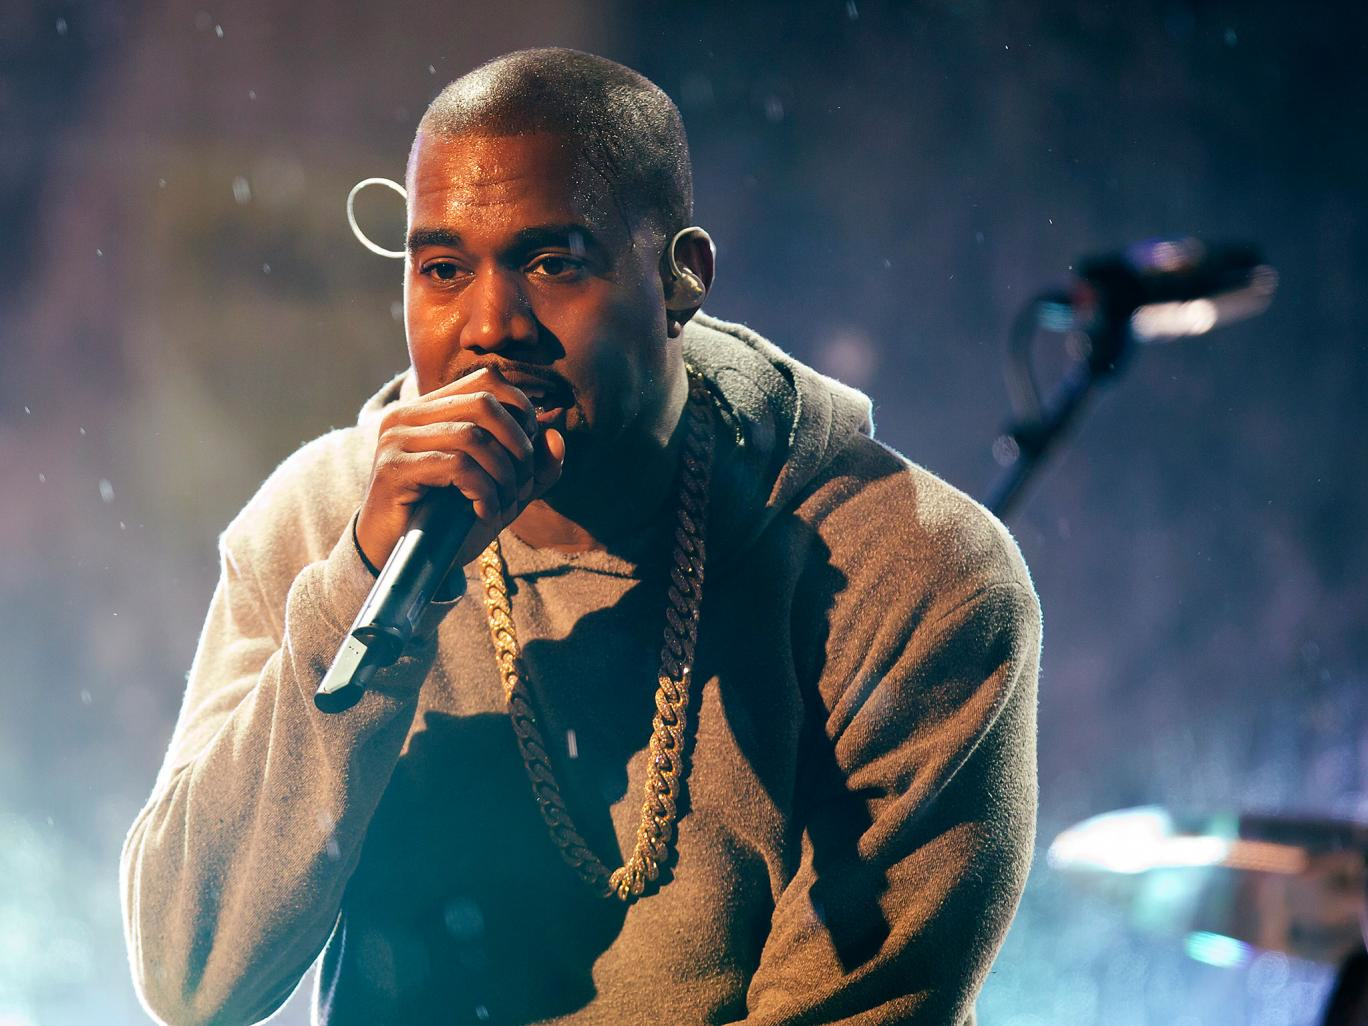 Kanye reuters 2 If You Break This Golden Rule Youll Never Work With Kanye West